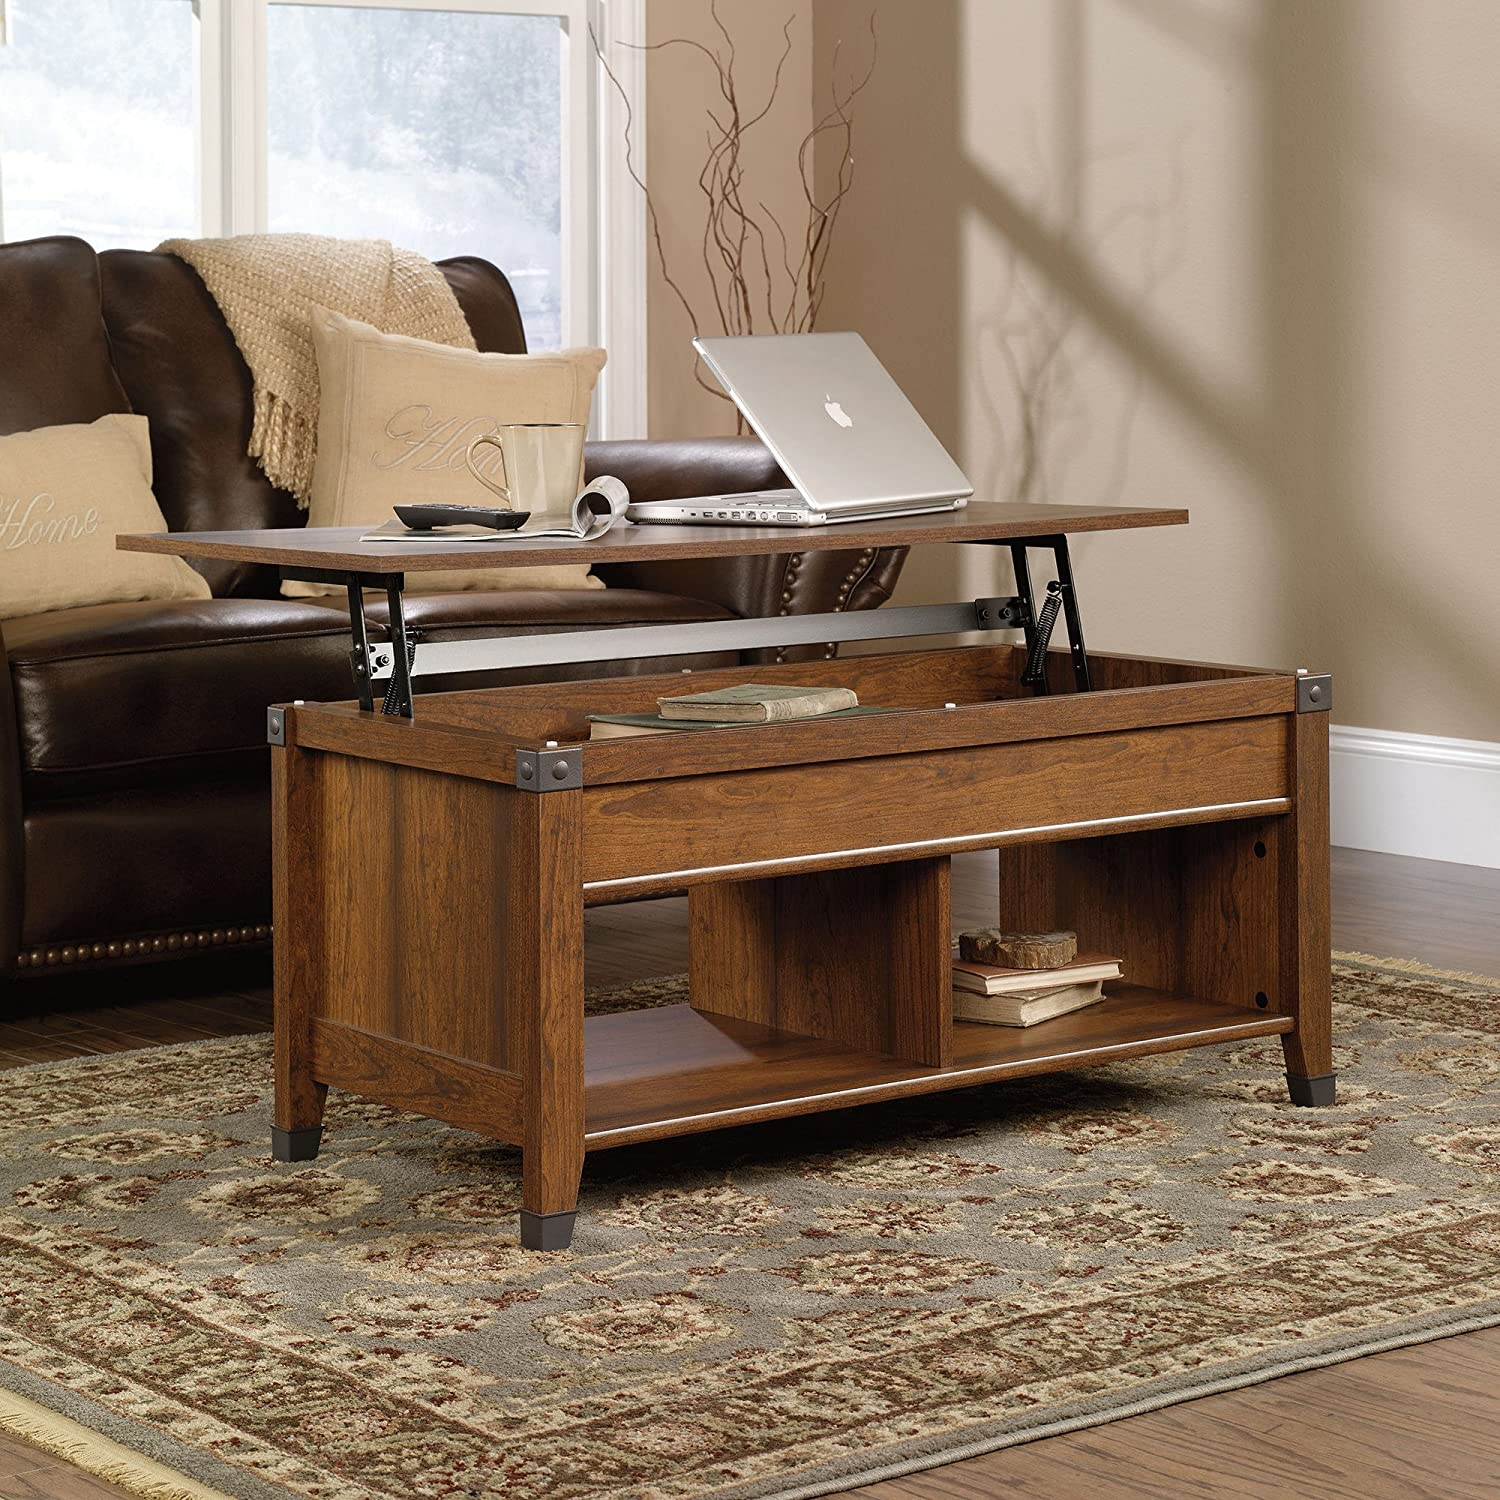 Carson forge lift top coffee table in cherrystylish modern contemporary traditional home decor furniturewooden laptop tables with built in shelf with